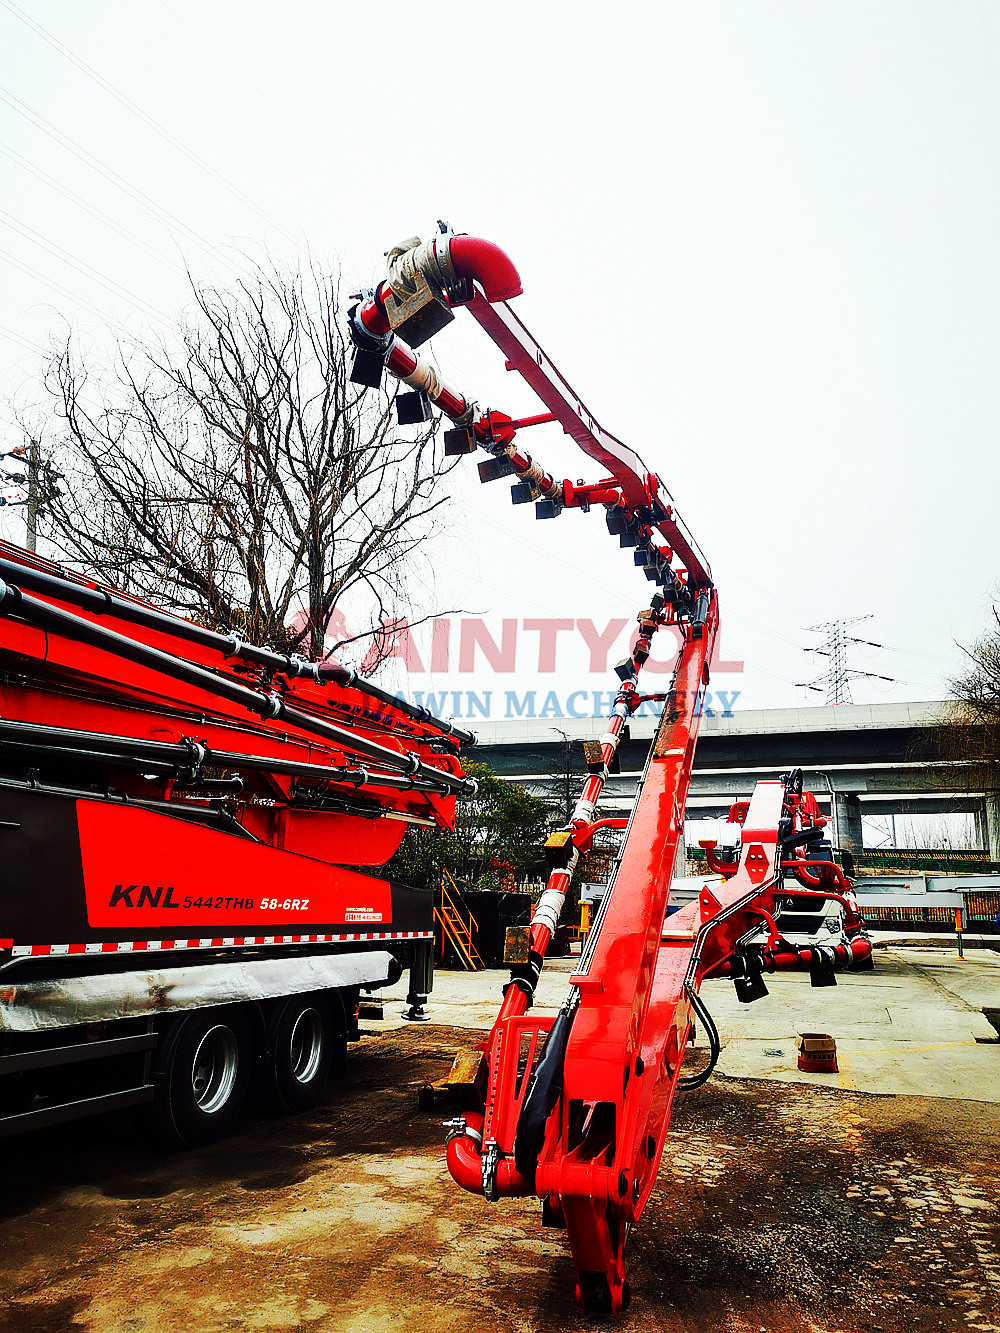 30m concrete placing boom pump truck full loading weight test